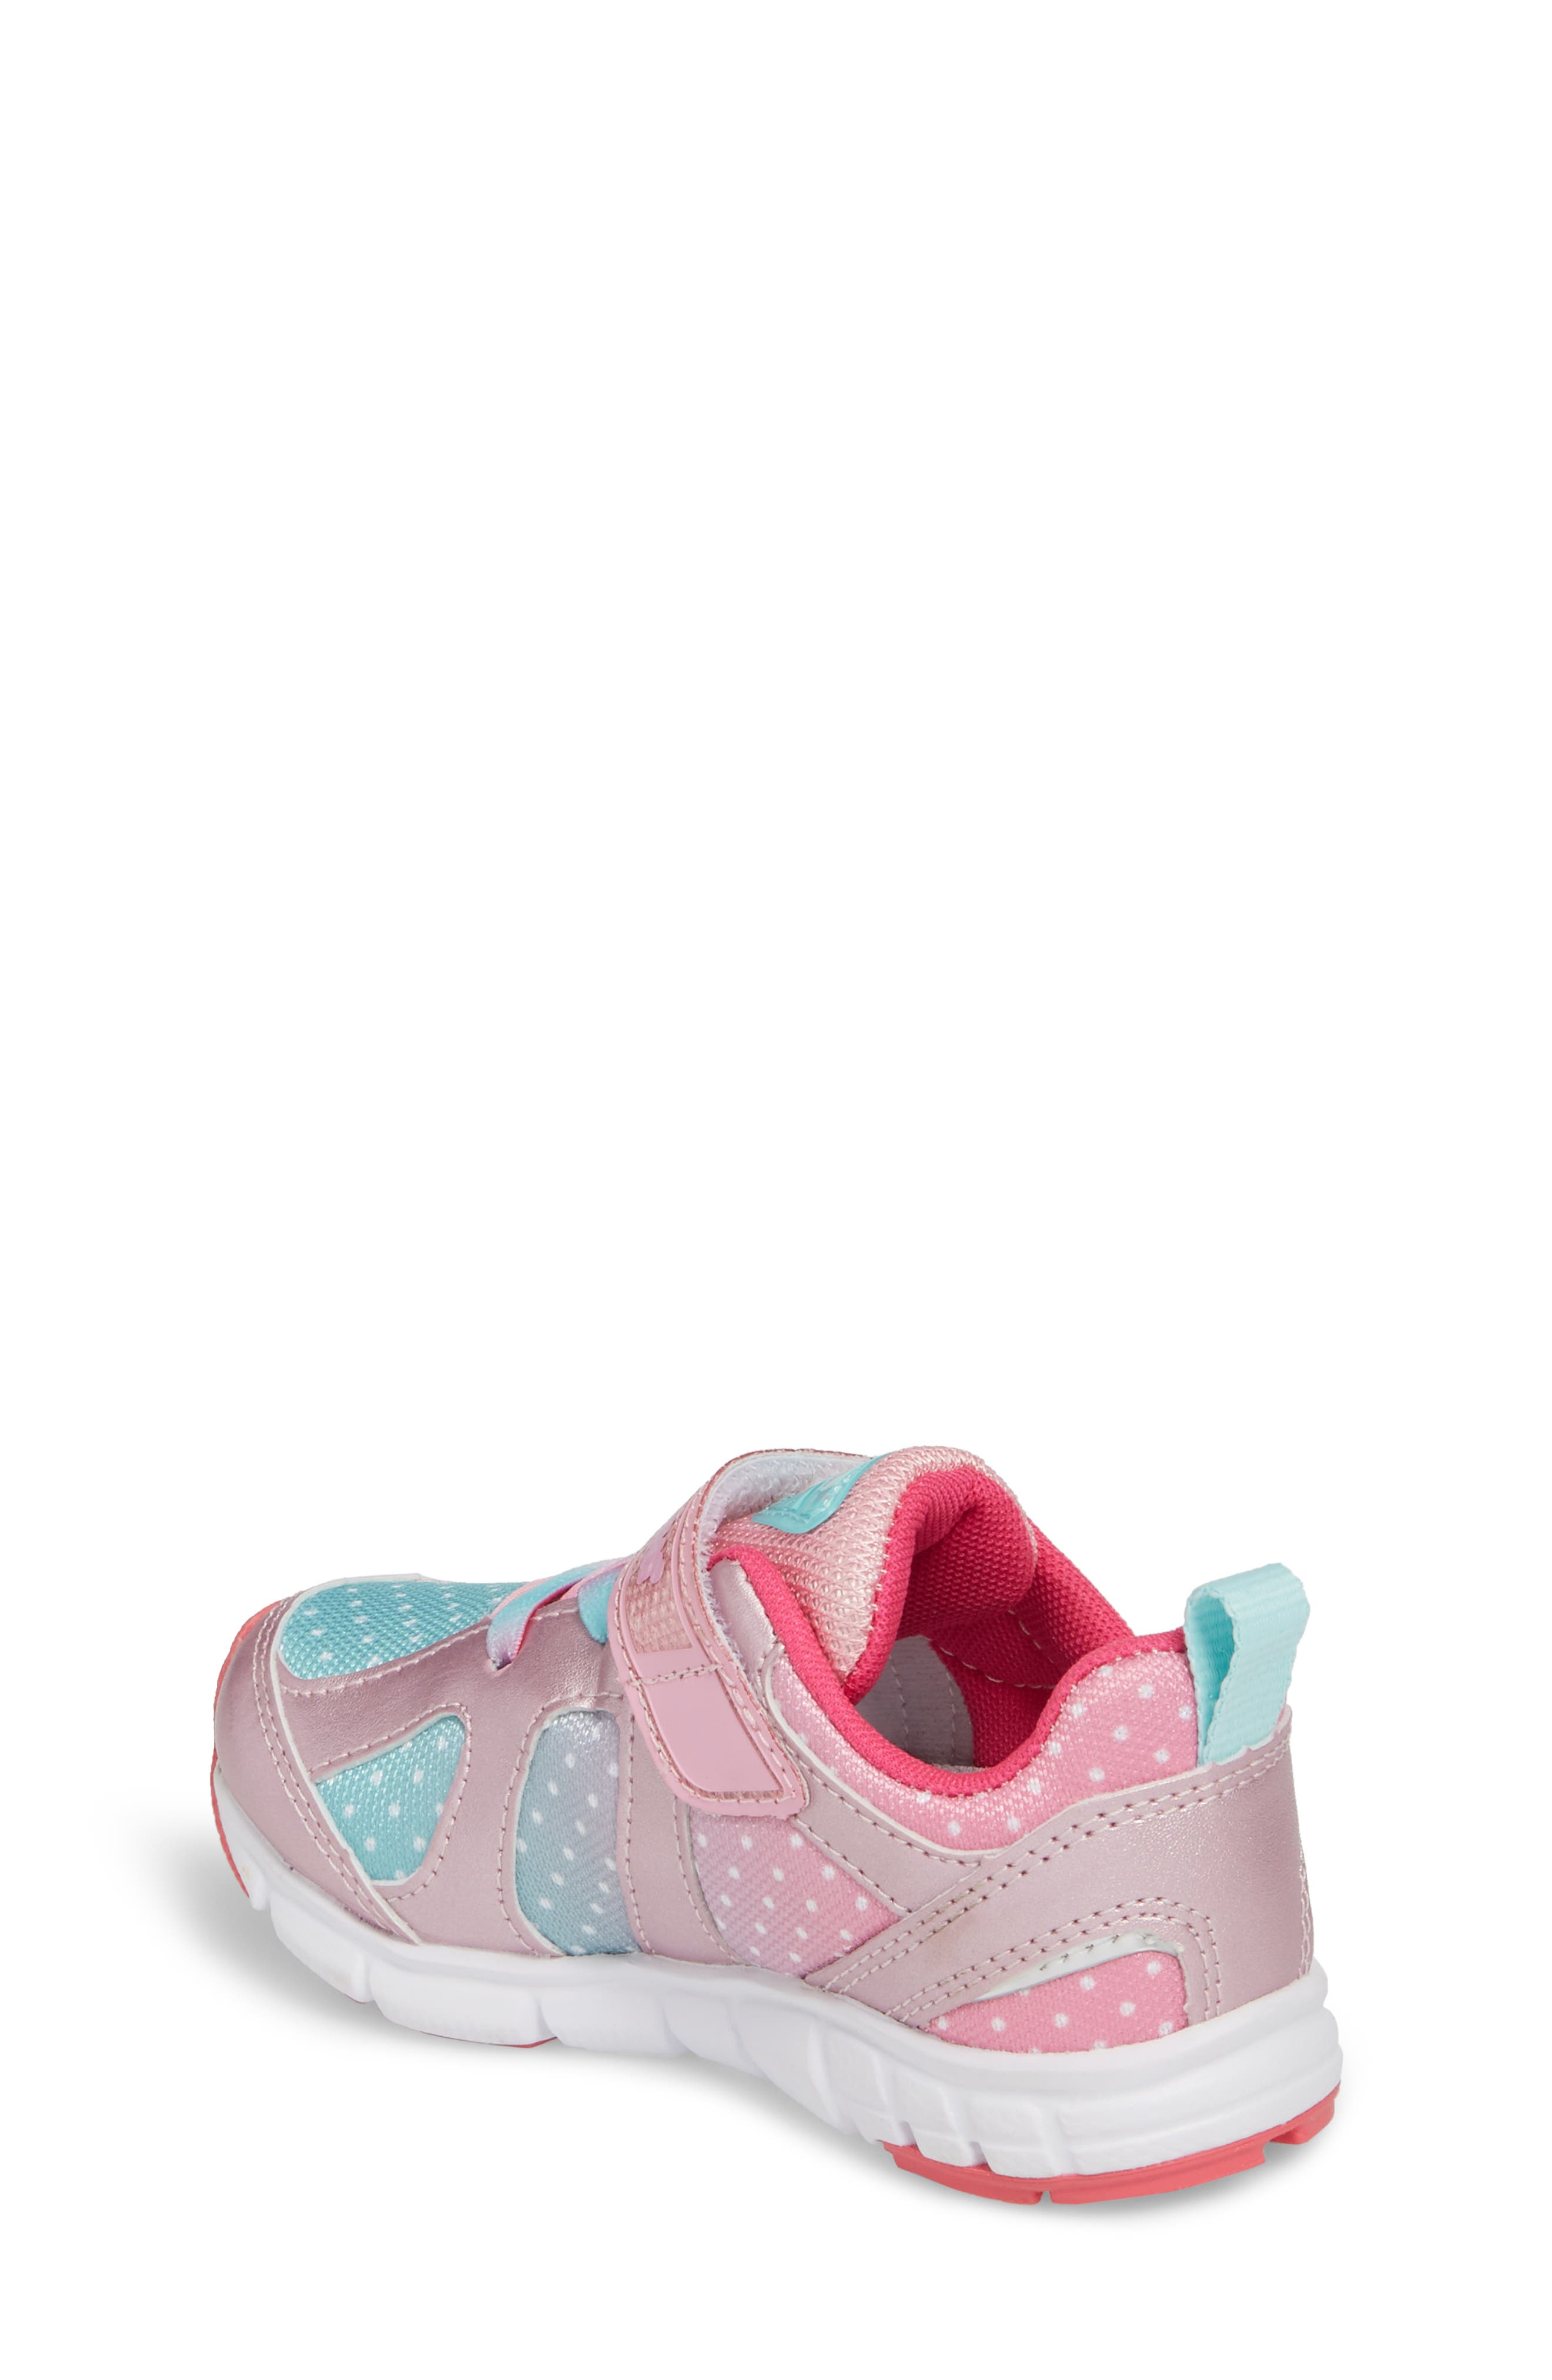 Rainbow Washable Sneaker,                             Alternate thumbnail 2, color,                             Rose/ Mint